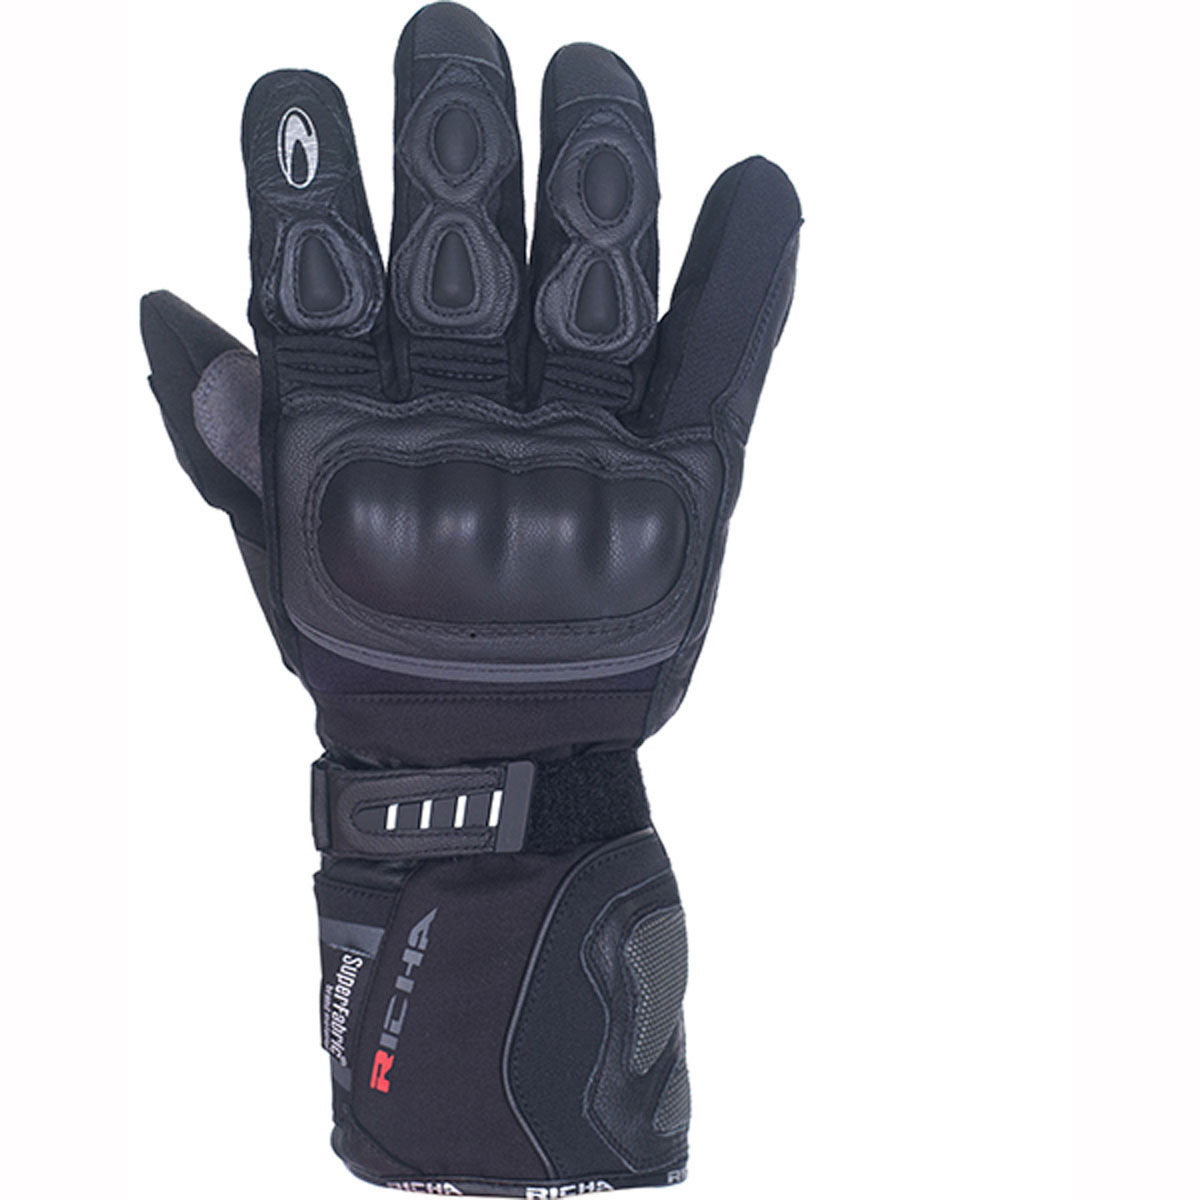 The Richa Arctic Gloves - one of the warmest motorcycle gloves for urban Winter riding